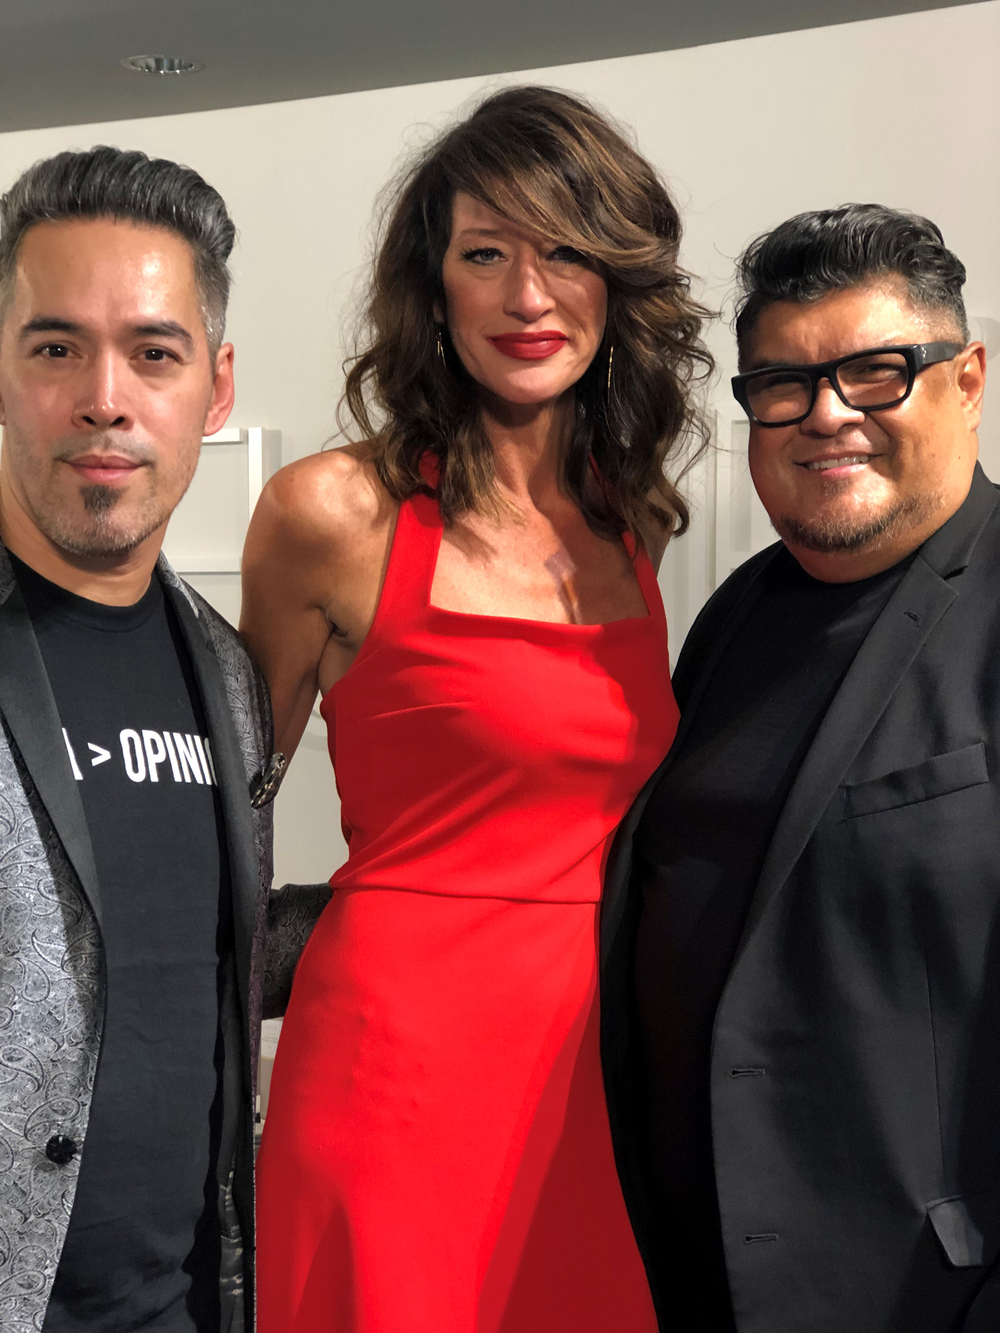 Easihair pro's Lance Courtney, Keune's VP of Education Jessica Mills and Keune Color Ambassador George Alderete at the event's after-party at the Keune Acadmey.